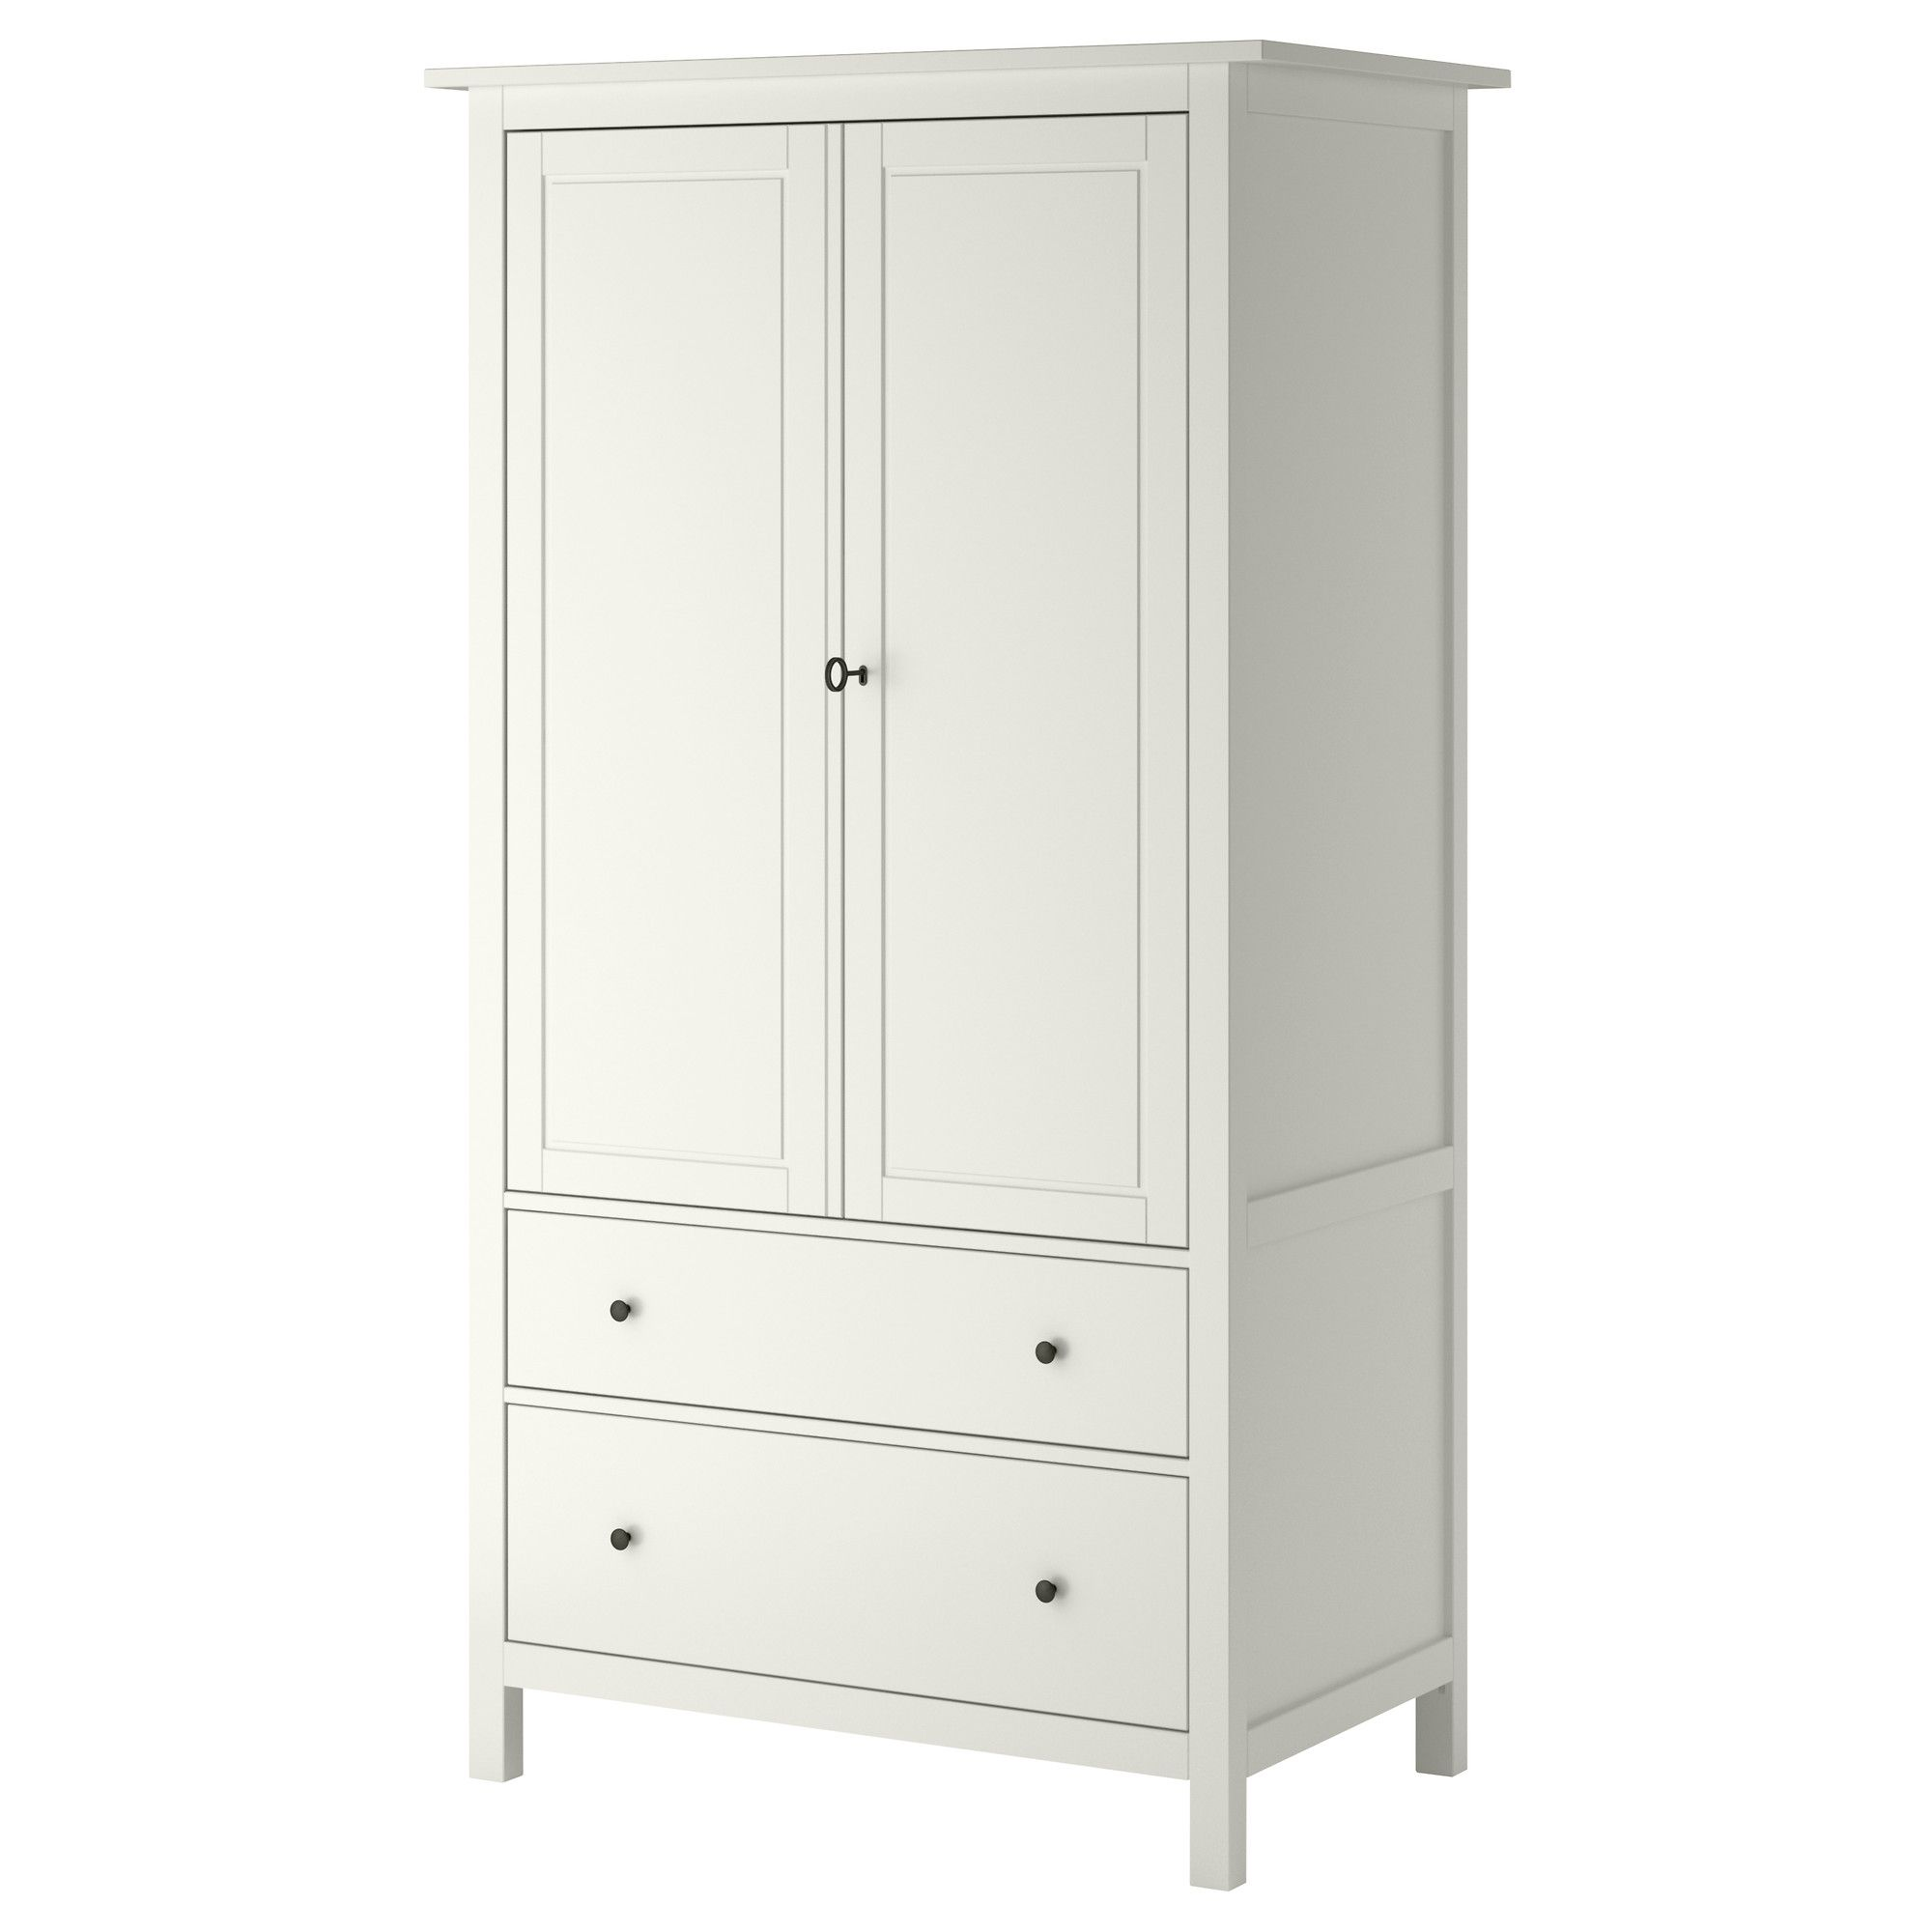 hemnes kleiderschrank ikea kinderzimmer pinterest hemnes kleiderschrank kleiderschrank. Black Bedroom Furniture Sets. Home Design Ideas